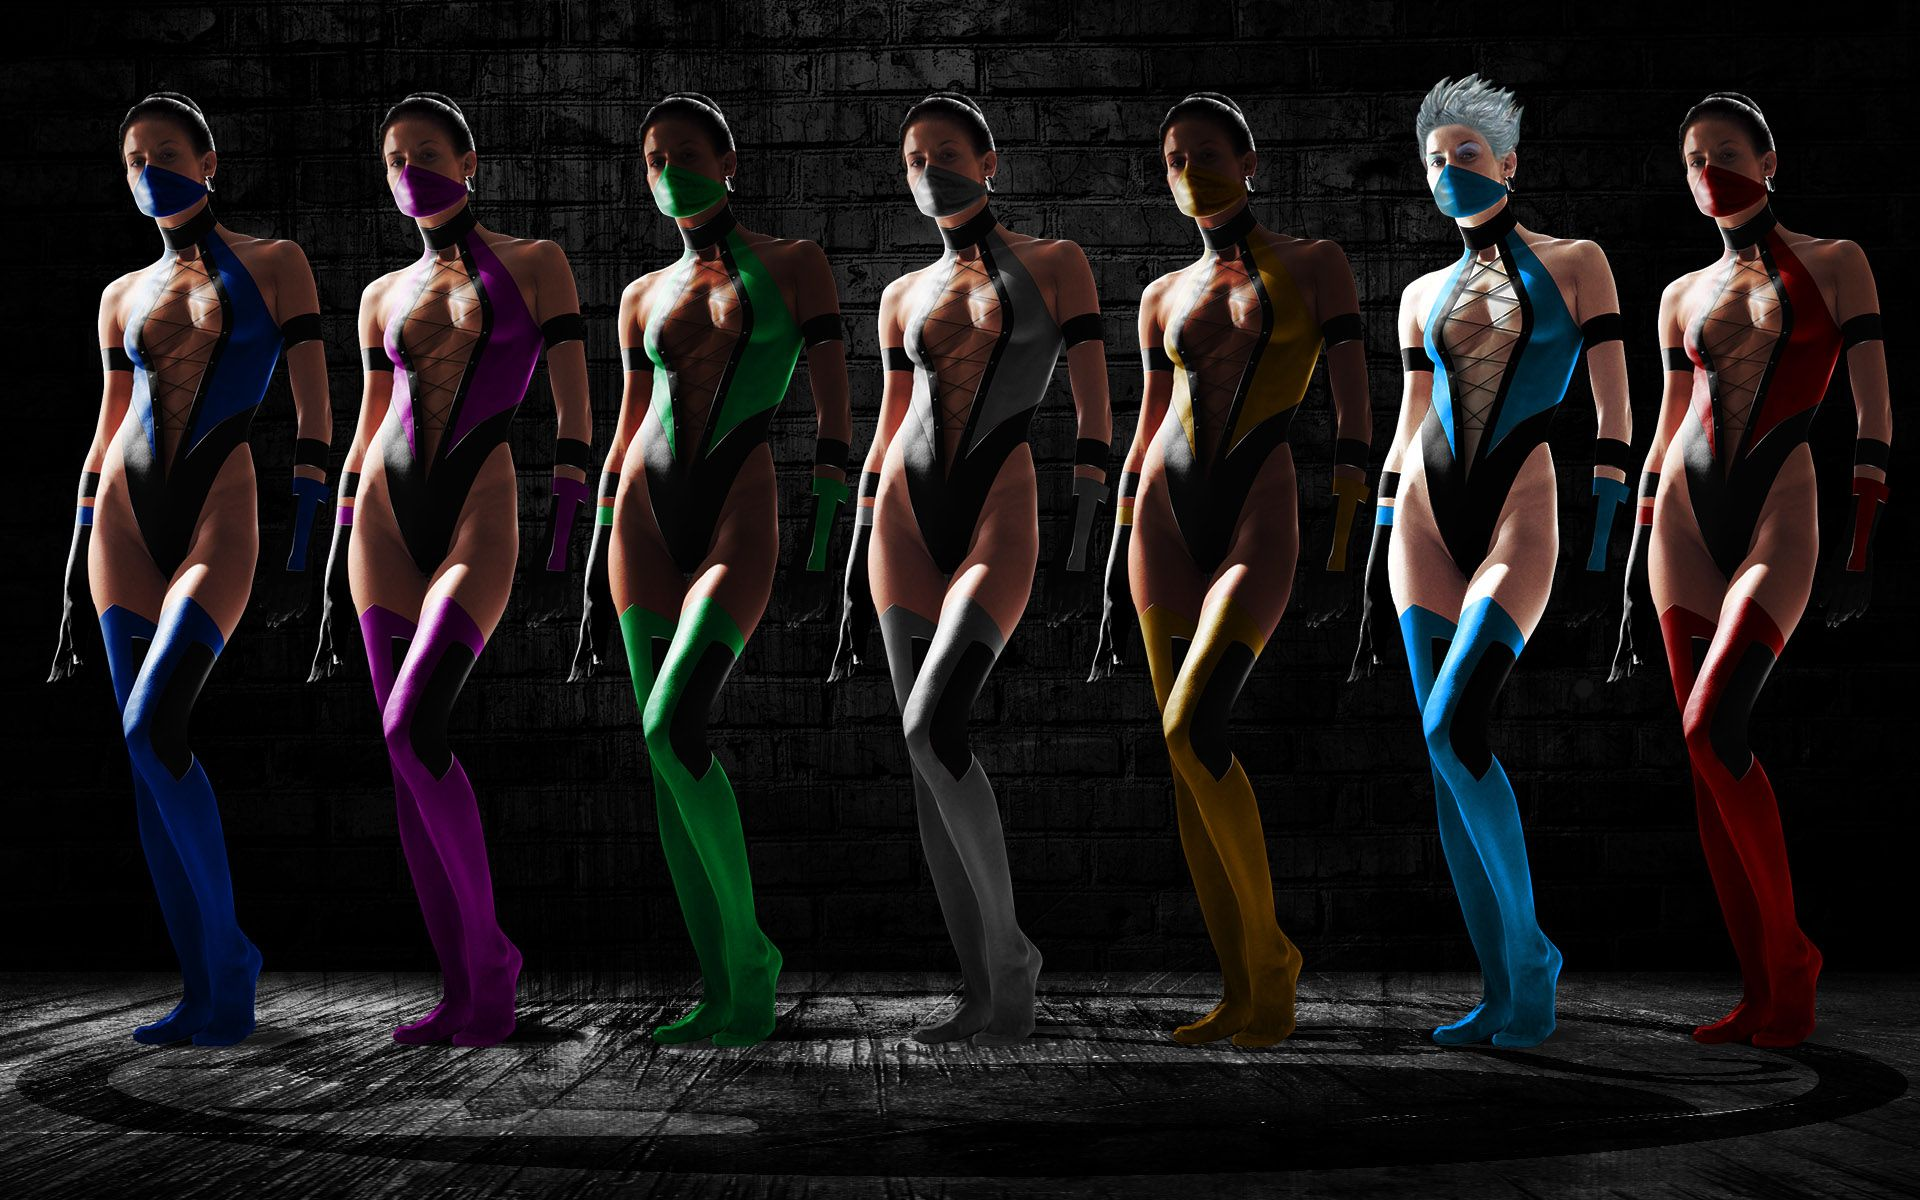 Image Result For Mortal Kombat X Female Characters Female